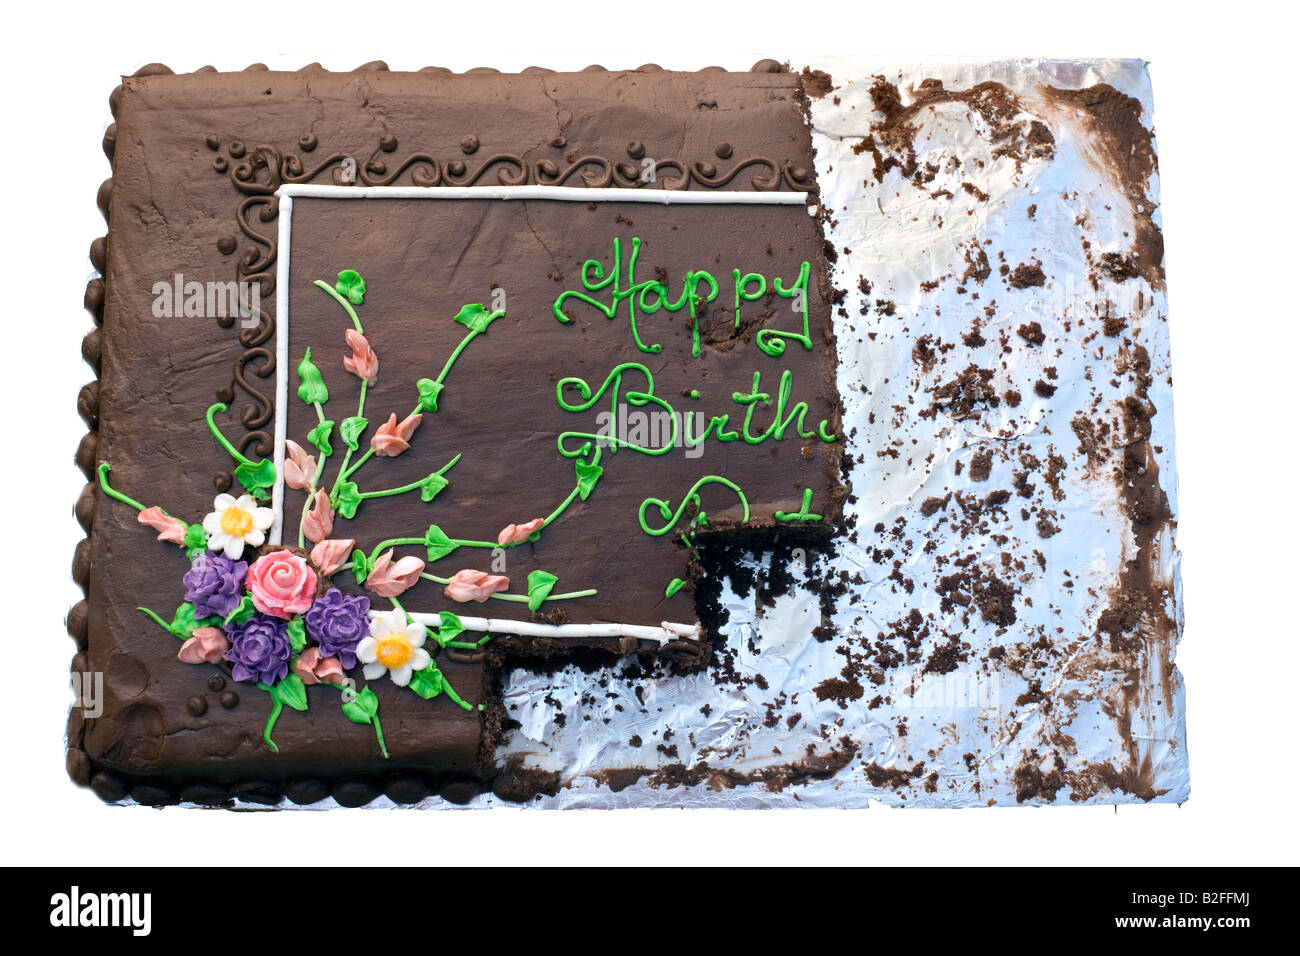 Partially Eaten Chocolate Birthday Cake - Stock Image